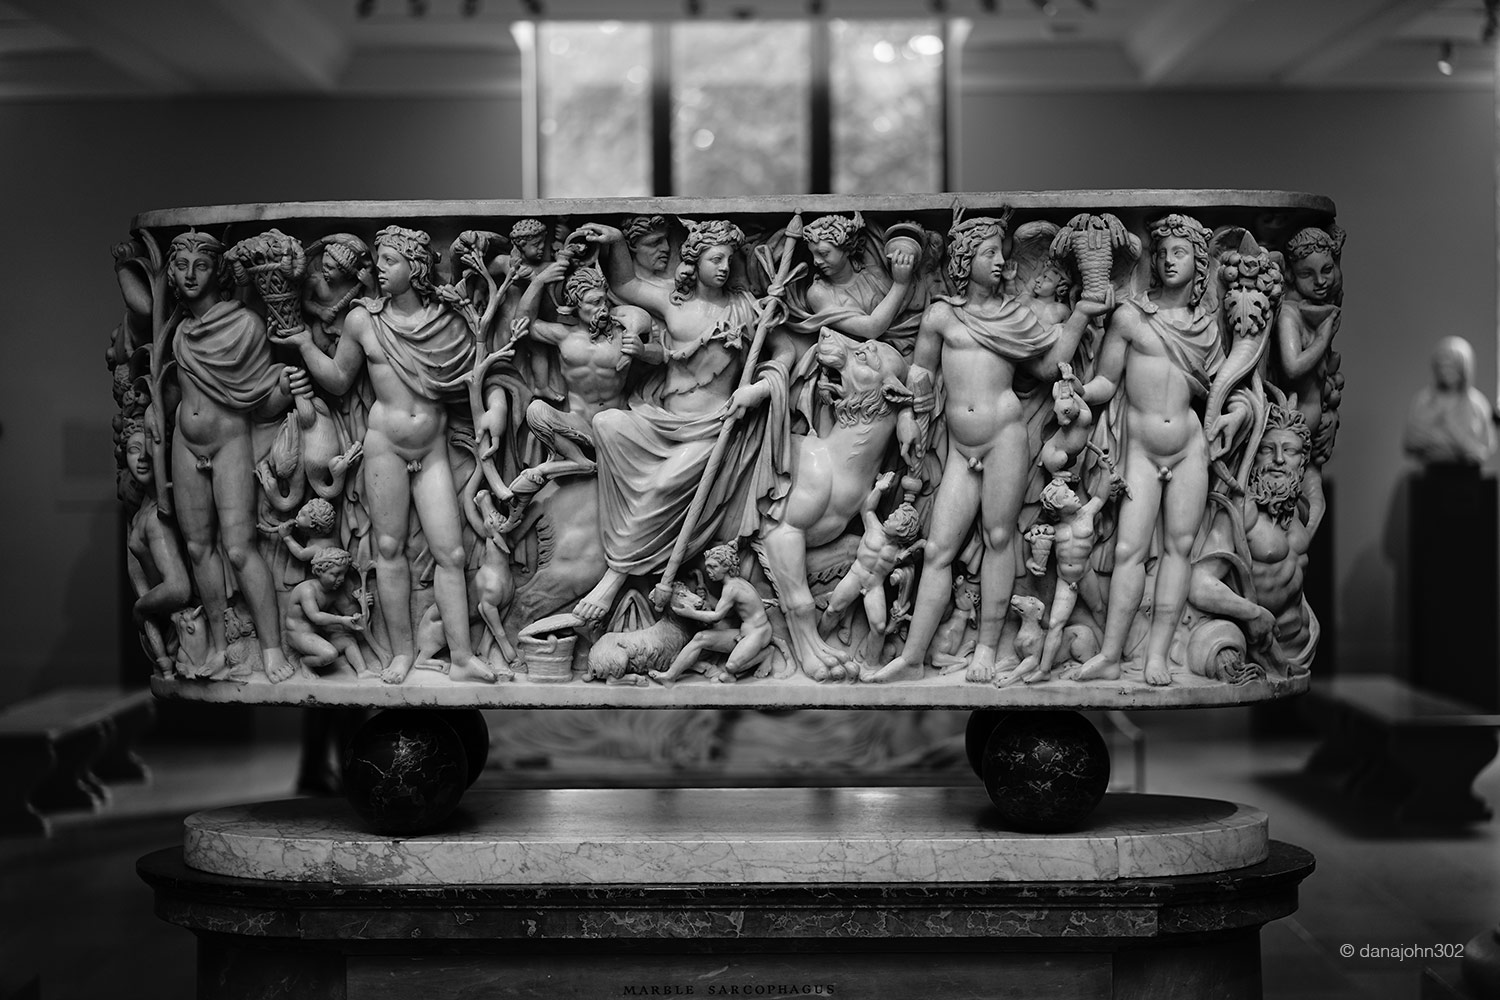 Marble sarcophagus with the Triumph of Dionysos and the Seasons at the Metropolitan Museum of Art